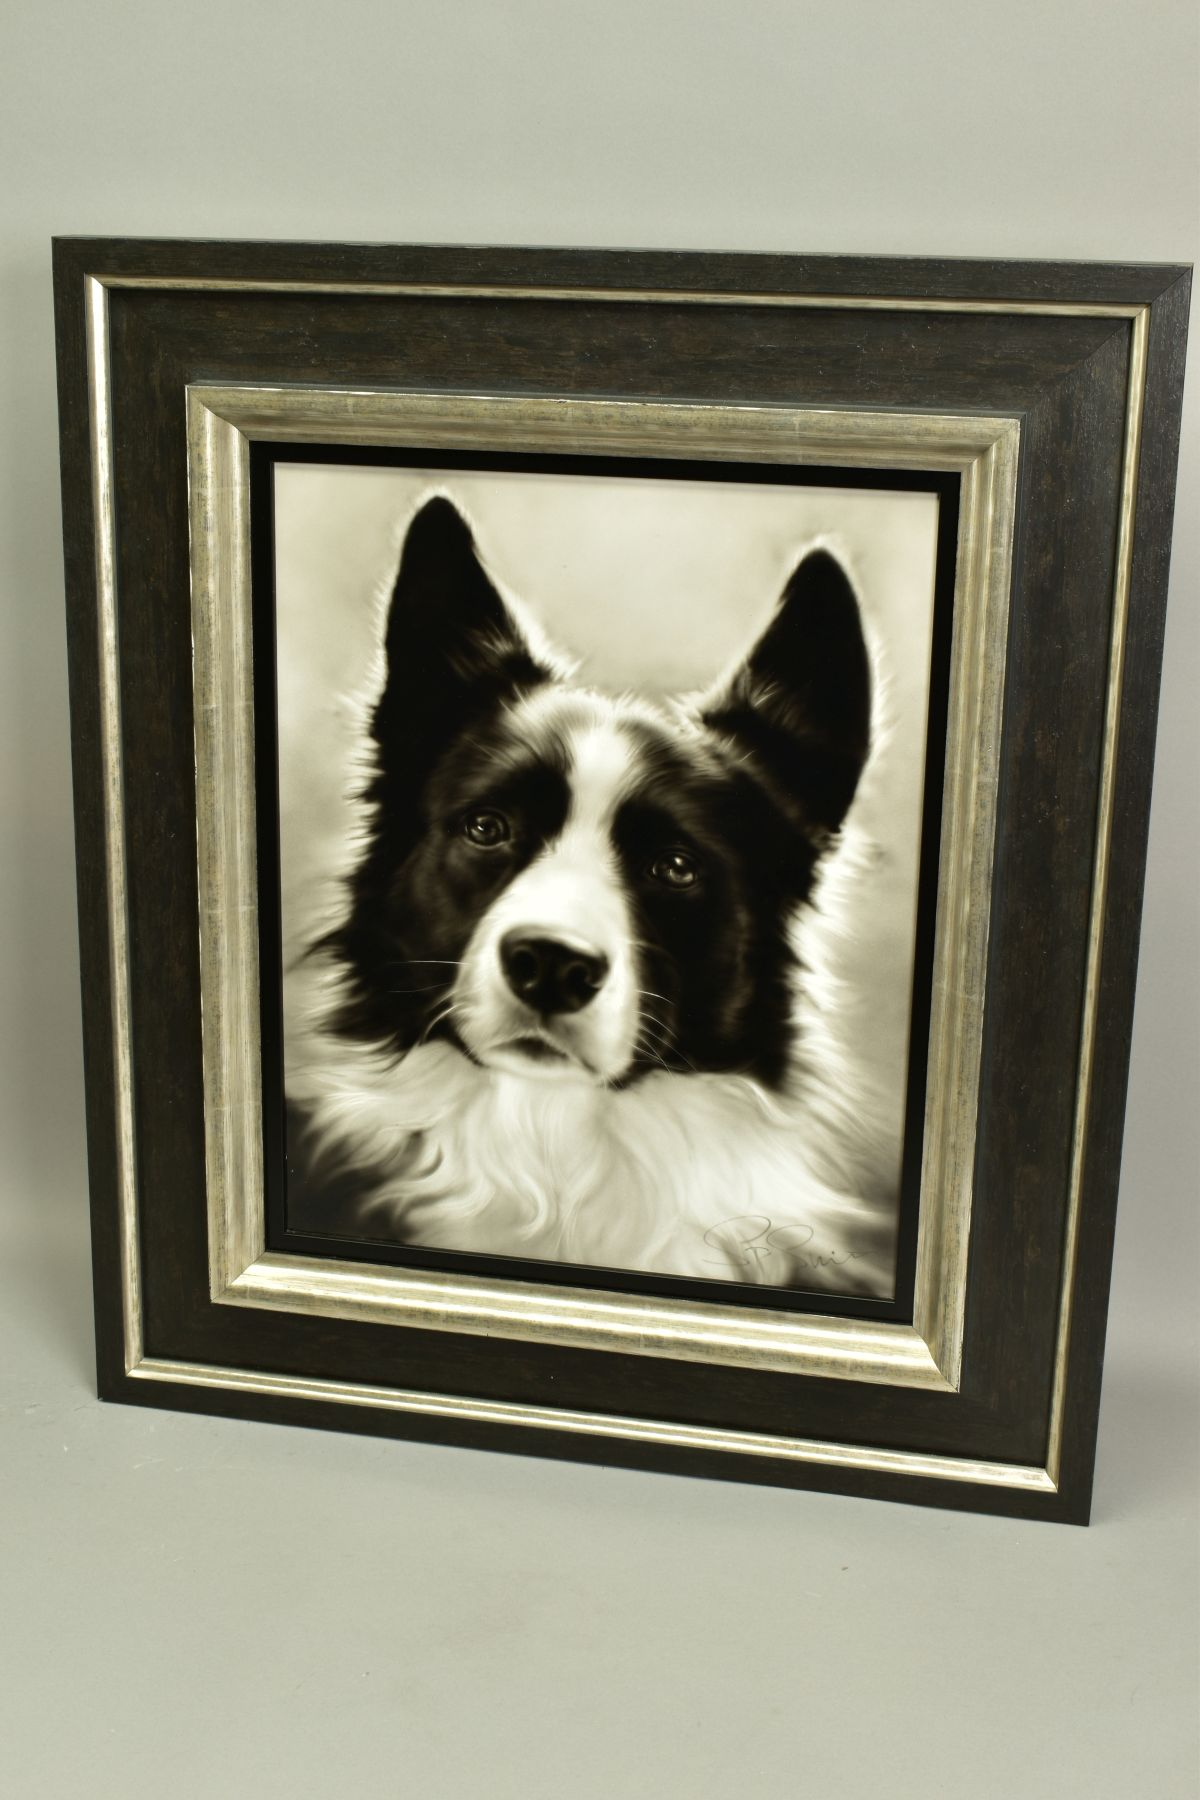 STEVEN SMITH (BRITISH 1974), 'Collie', a portrait of a Collie Dog, signed bottom right, air brush on - Image 5 of 6